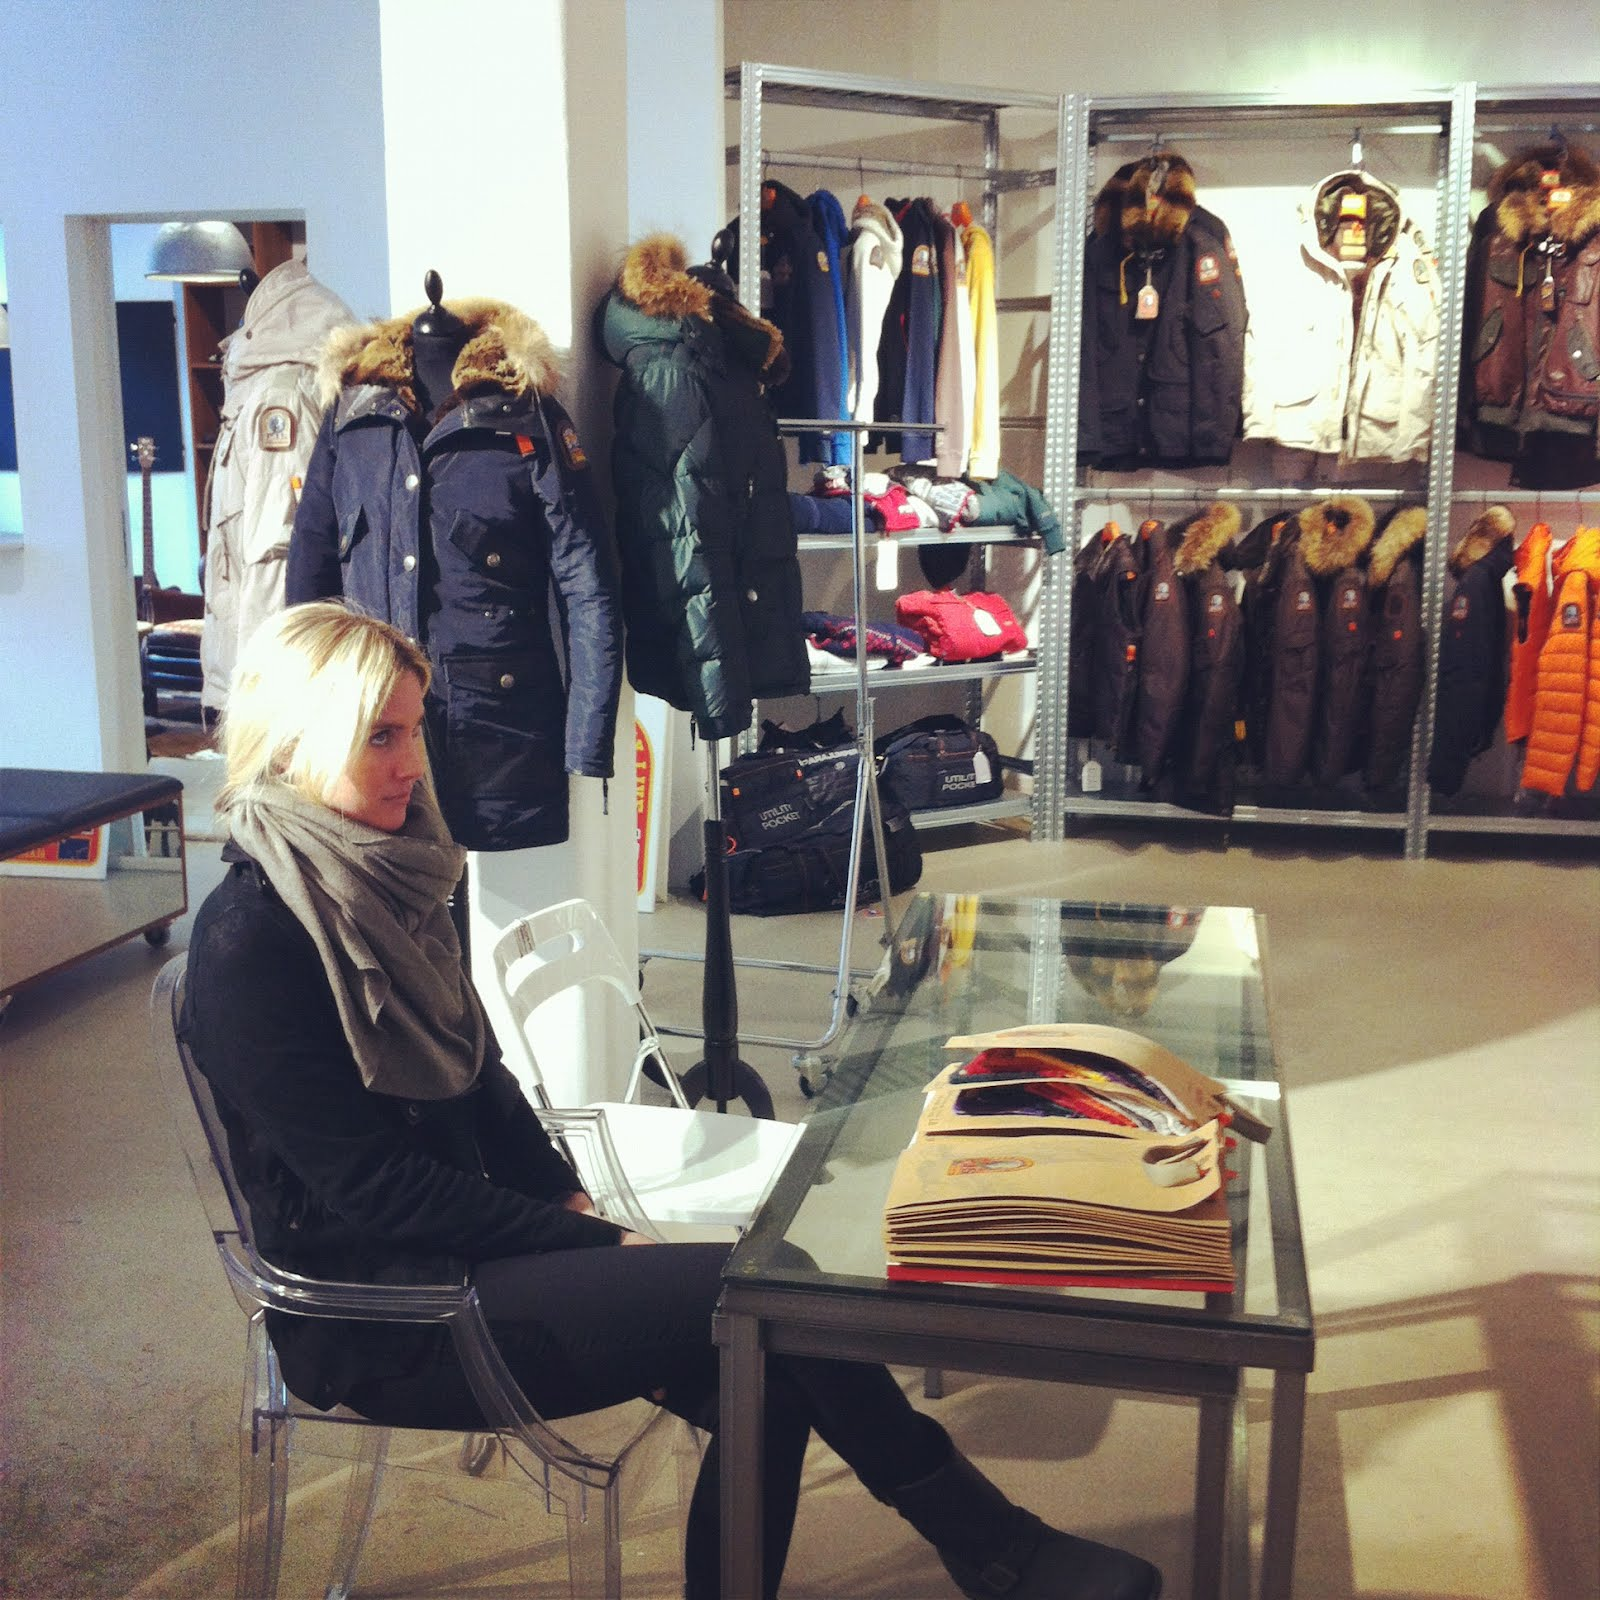 parajumpers outlet kristianstad